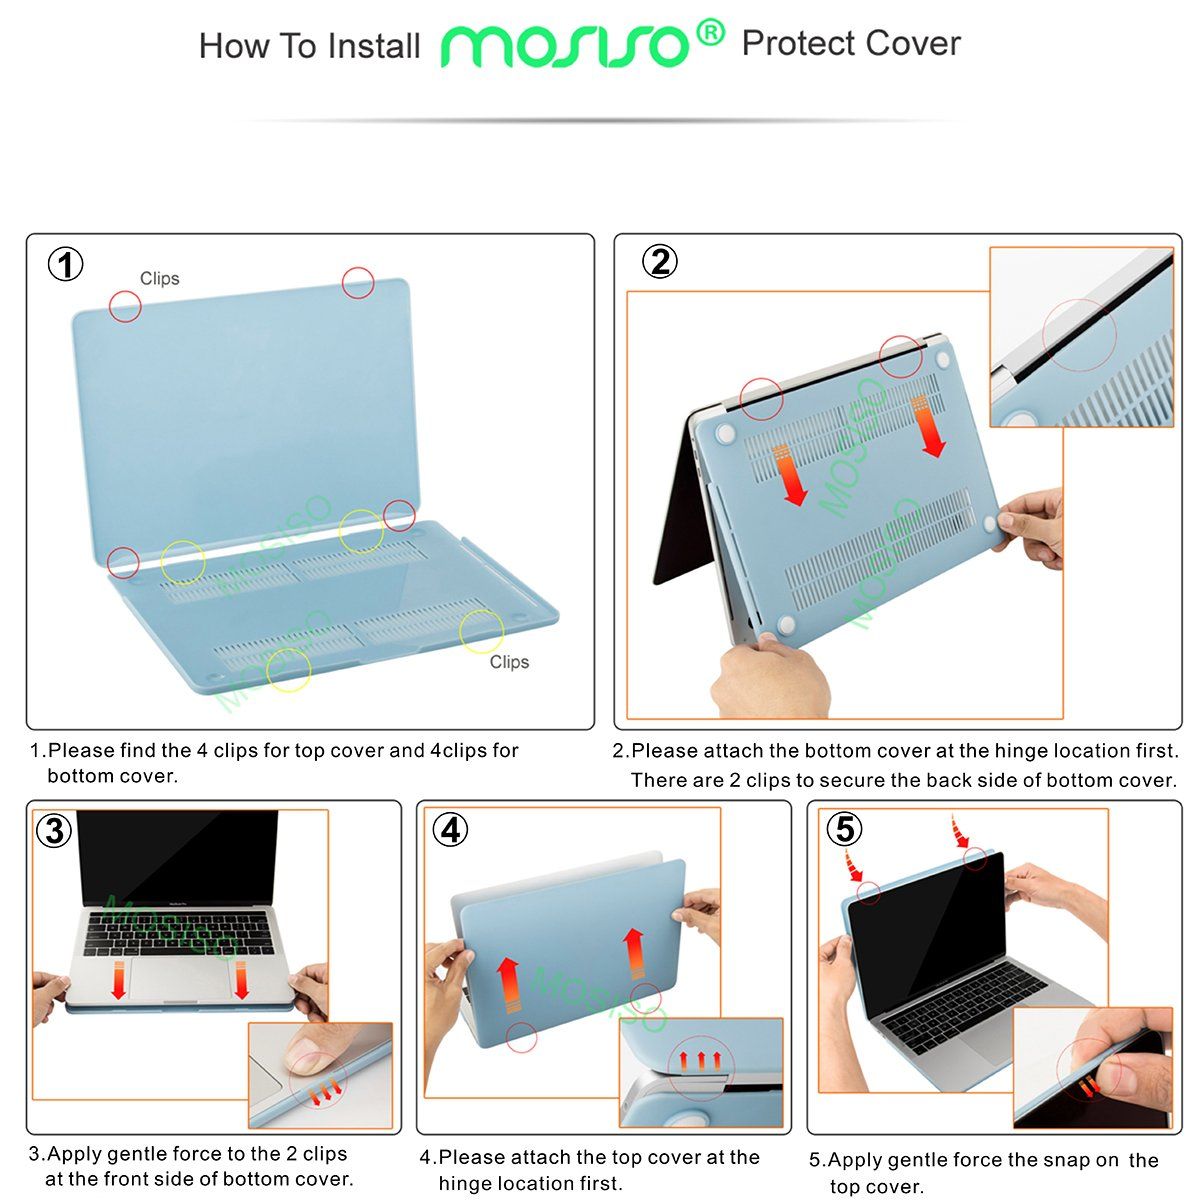 MOSISO MacBook Pro 15 Case 2018 2017 2016 Release A1990/A1707 Touch Bar Models, Plastic Hard Shell & Keyboard Cover & Screen Protector & Storage Bag Compatible Newest Mac Pro 15 Inch, Crystal Clear by MOSISO (Image #3)